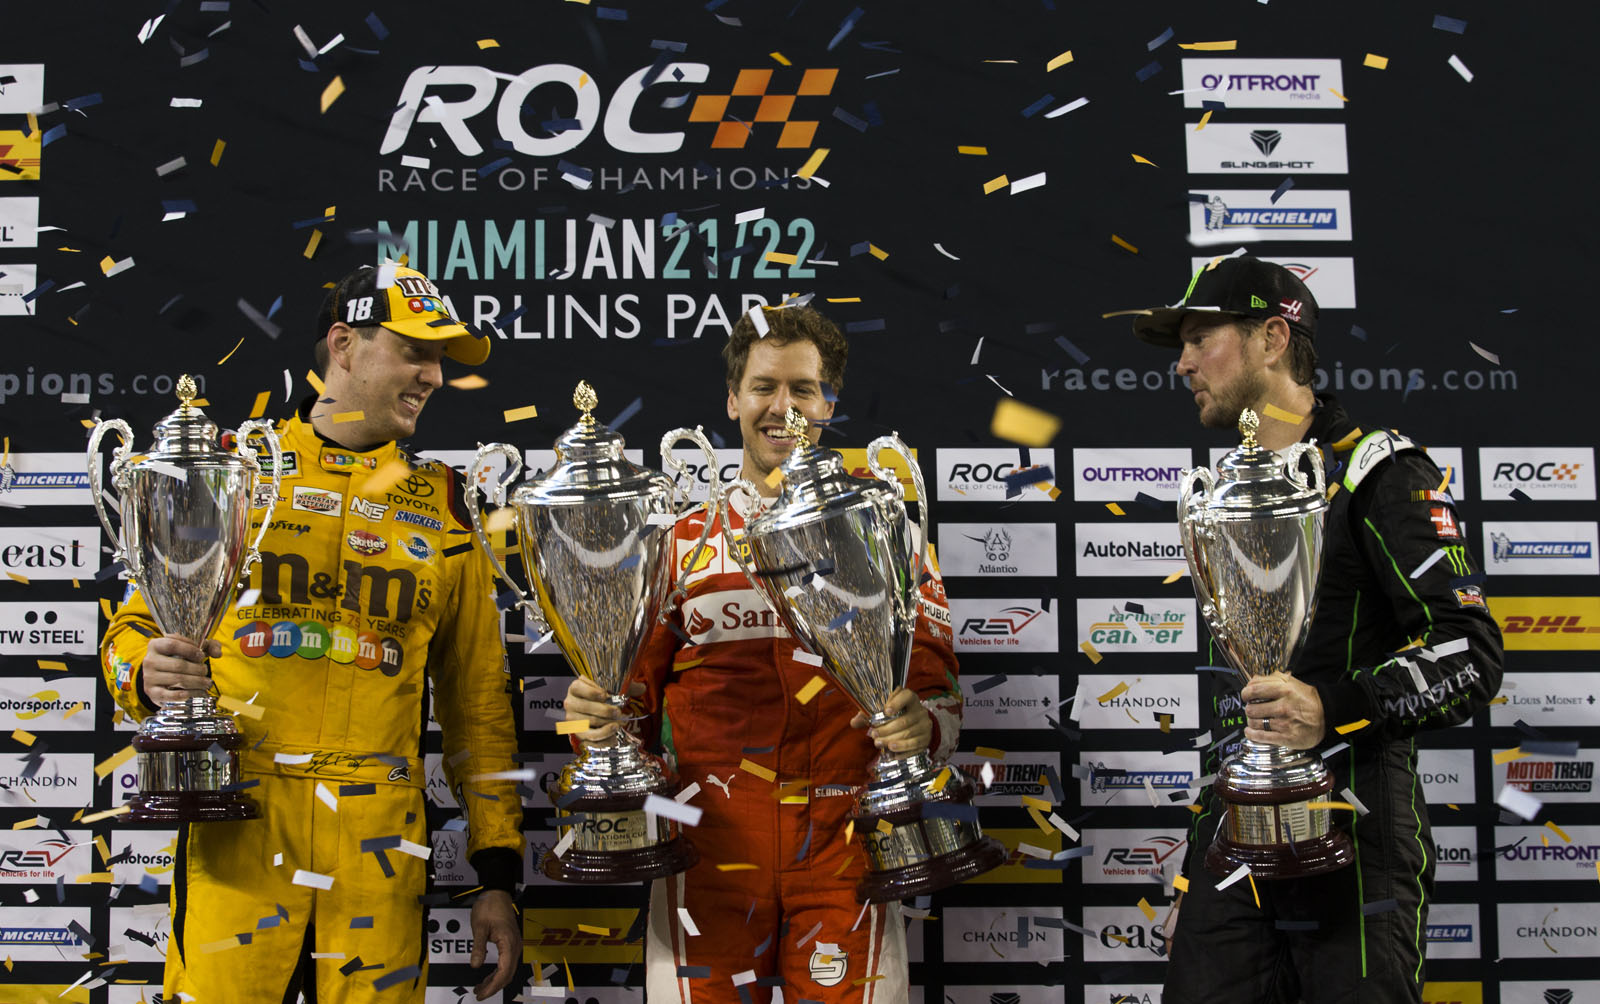 Team Germany Sebastian Vettel (GER) celebrates his win with runners up Team USA NASCAR Kyle Busch (USA) and Kurt Busch (USA) during the ROC Nations Cup on Sunday 22 January 2017 at Marlins Park, Miami, Florida, USA